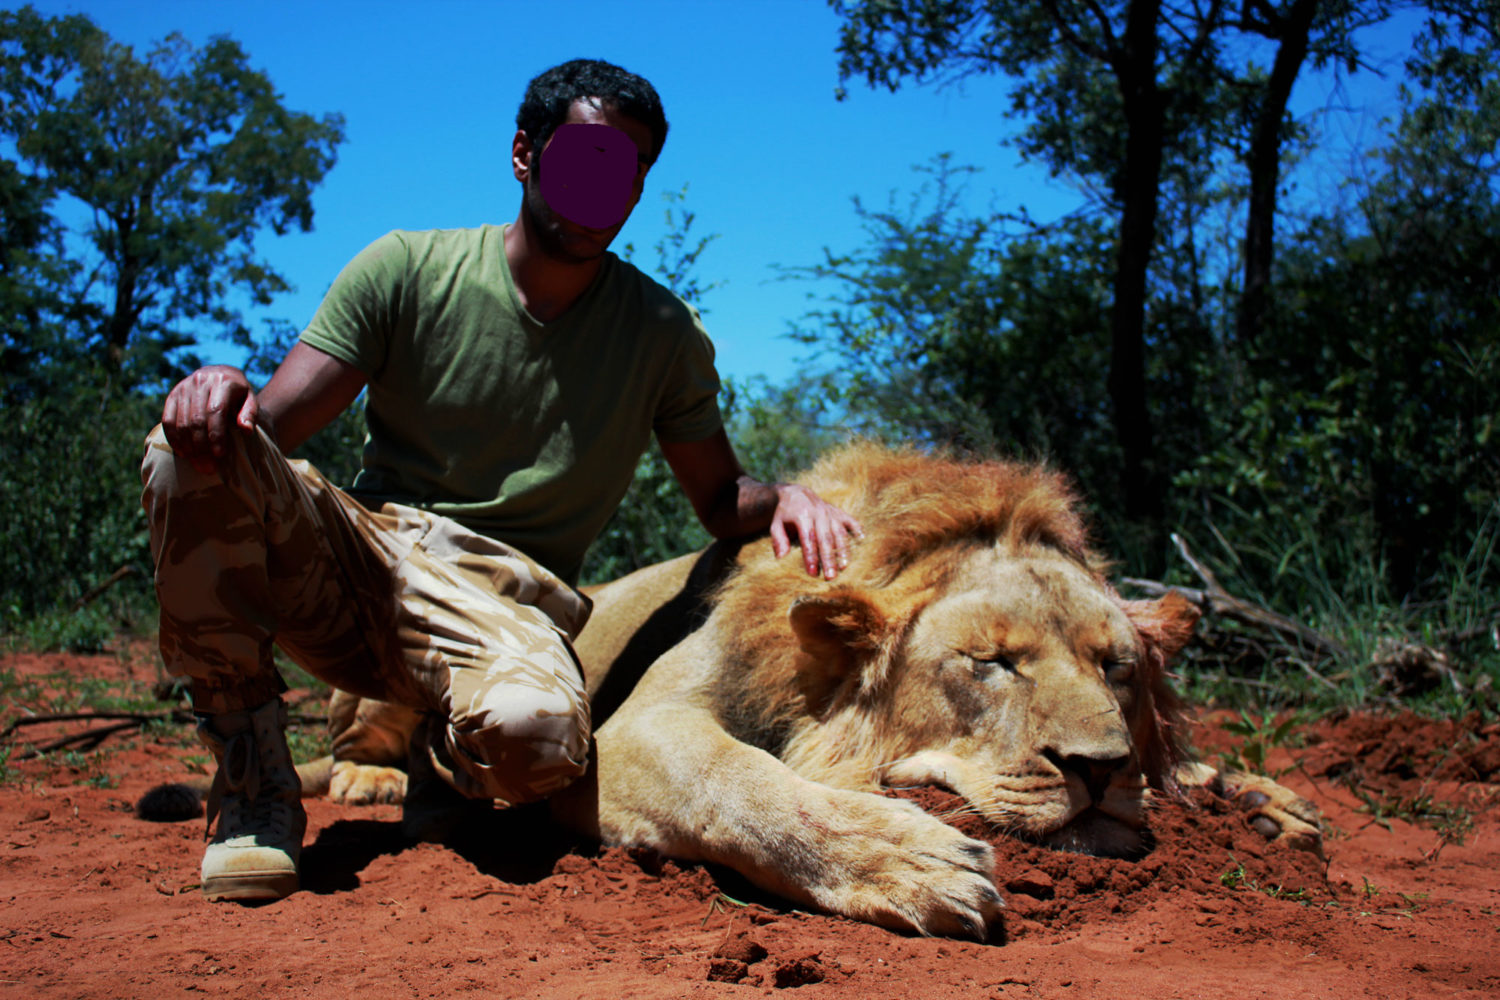 Hunting category 1 lions in South Africa